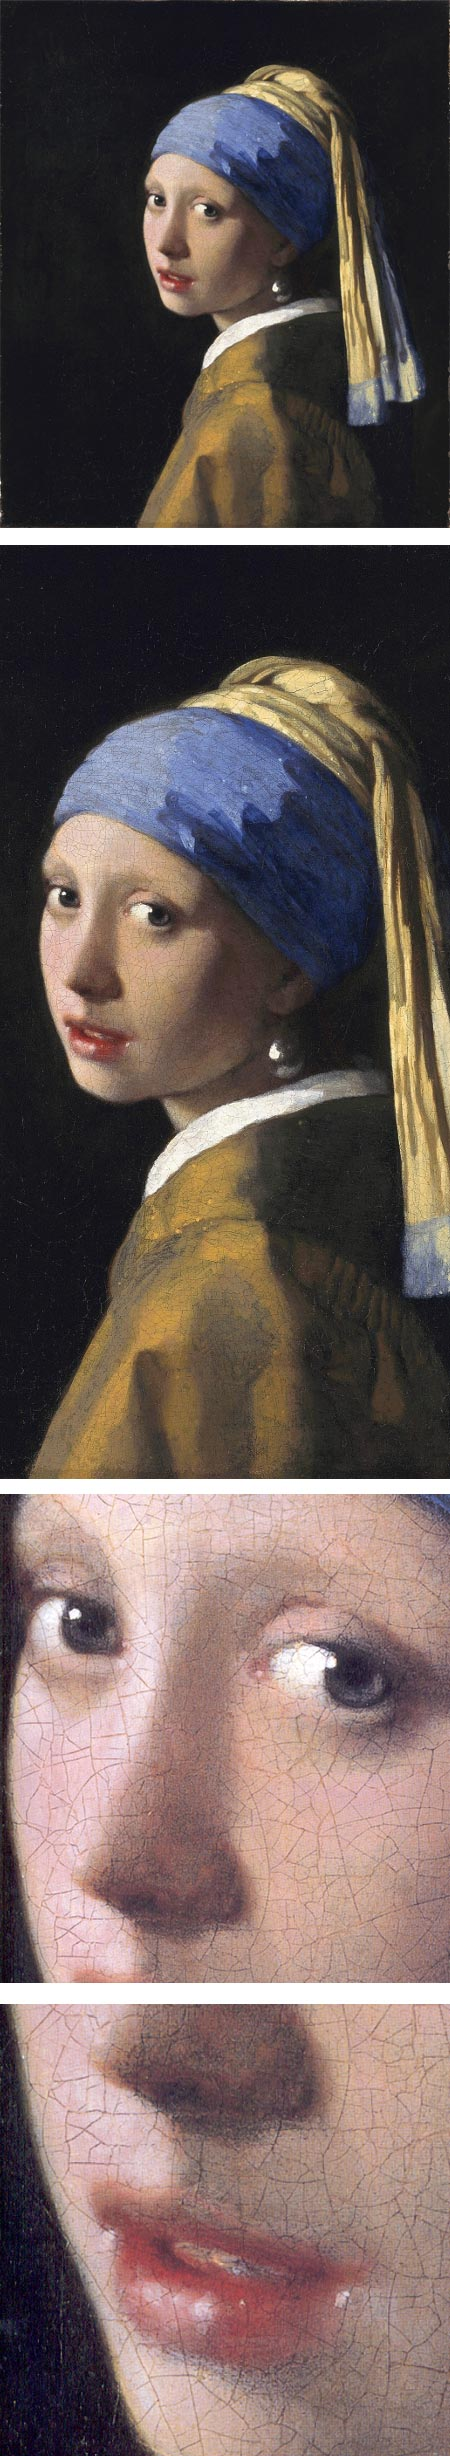 Vermeer, Rembrandt and Hals at the Frick in NY, Girl with a Pearl Earring, Vermeer